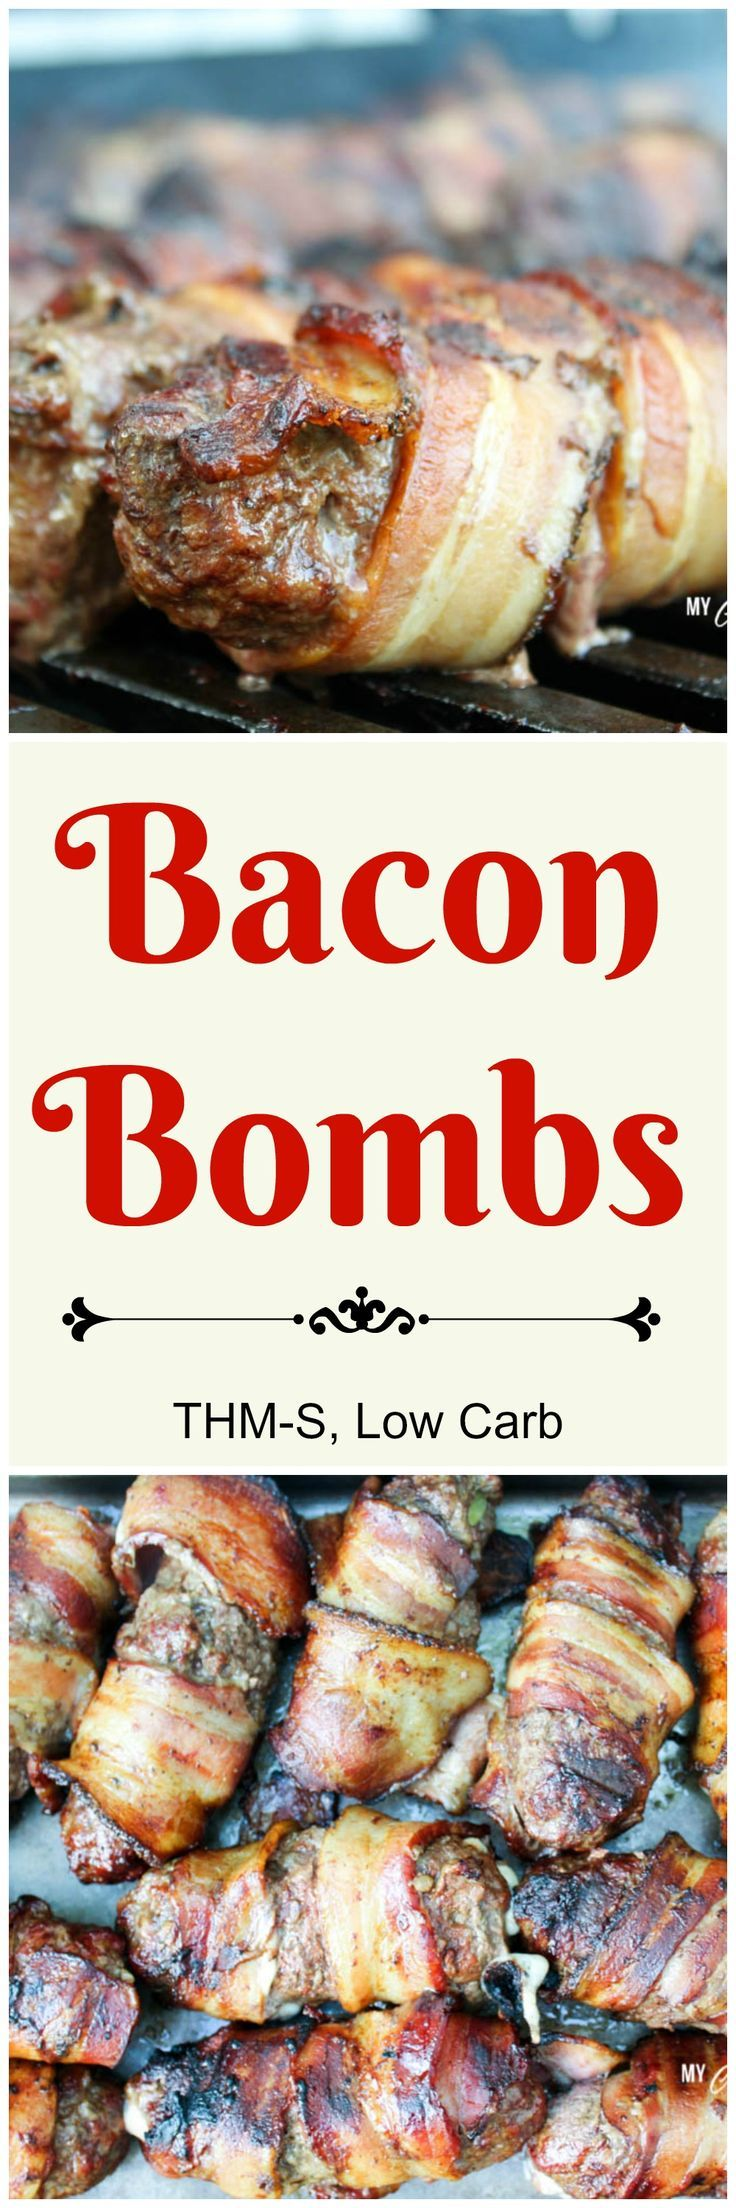 Bacon Bombs (THM-S, Low Carb). Bacon lovers will love this delicious low carb appetizer.